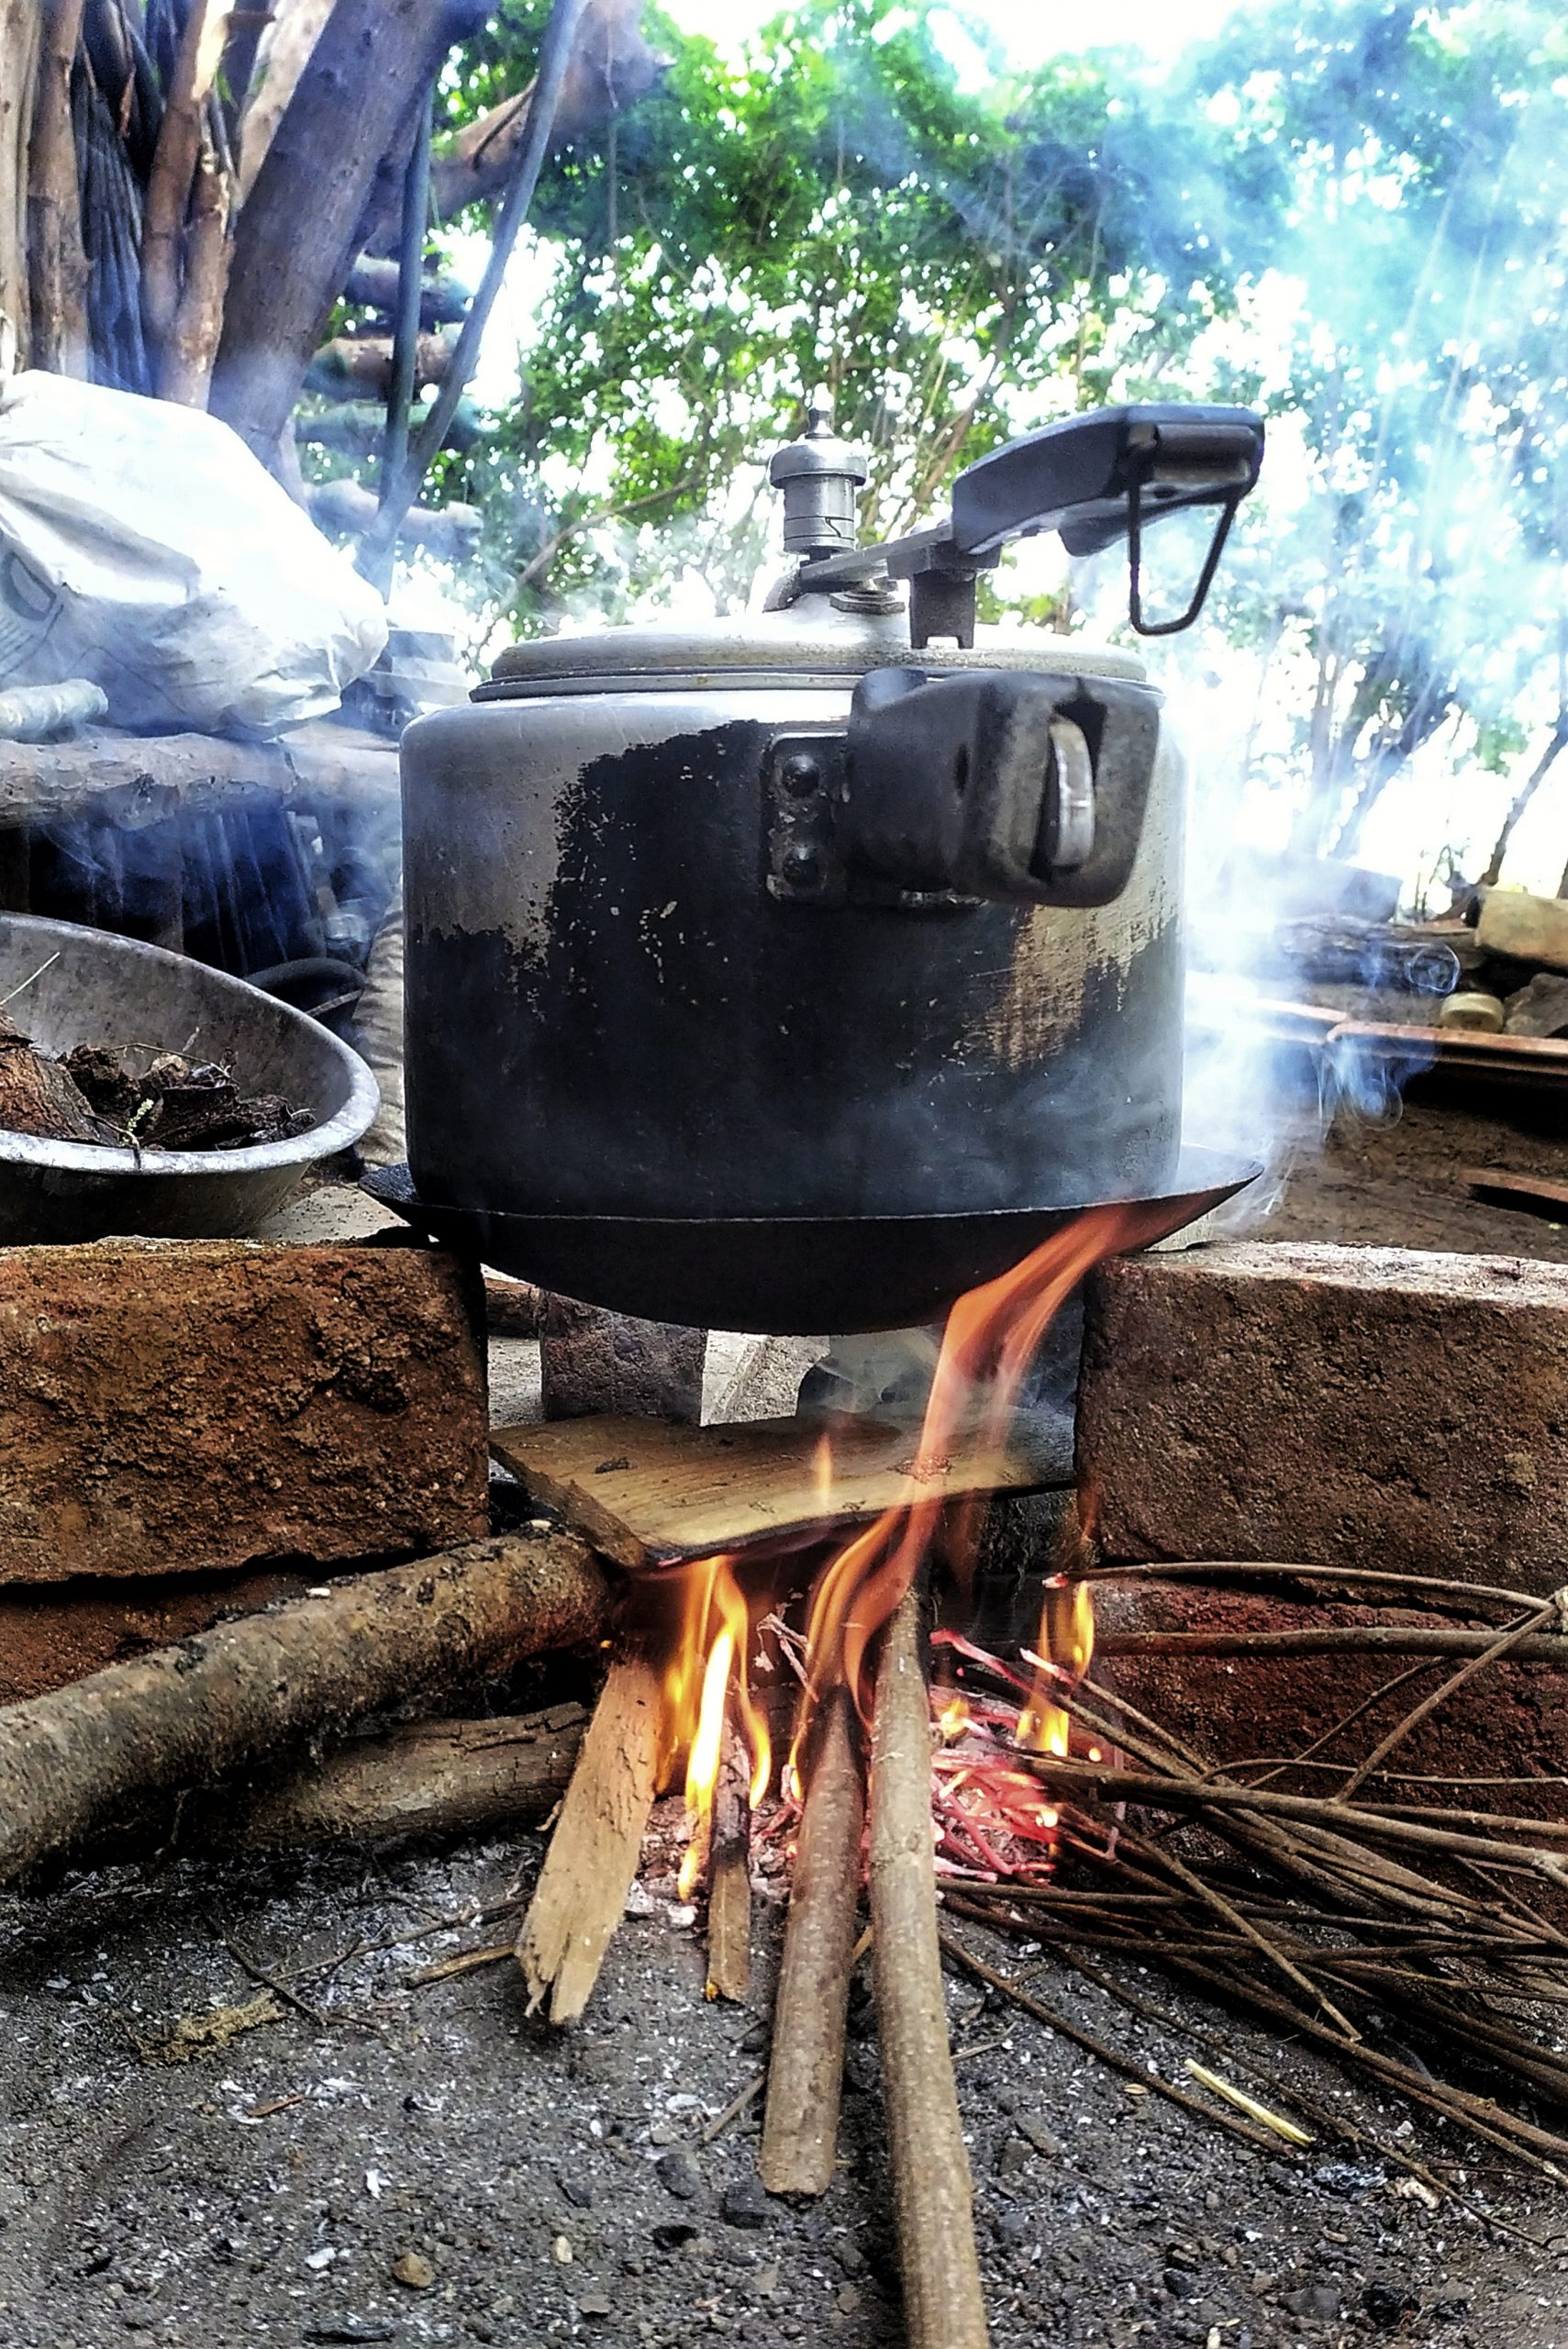 Cooker on the fire